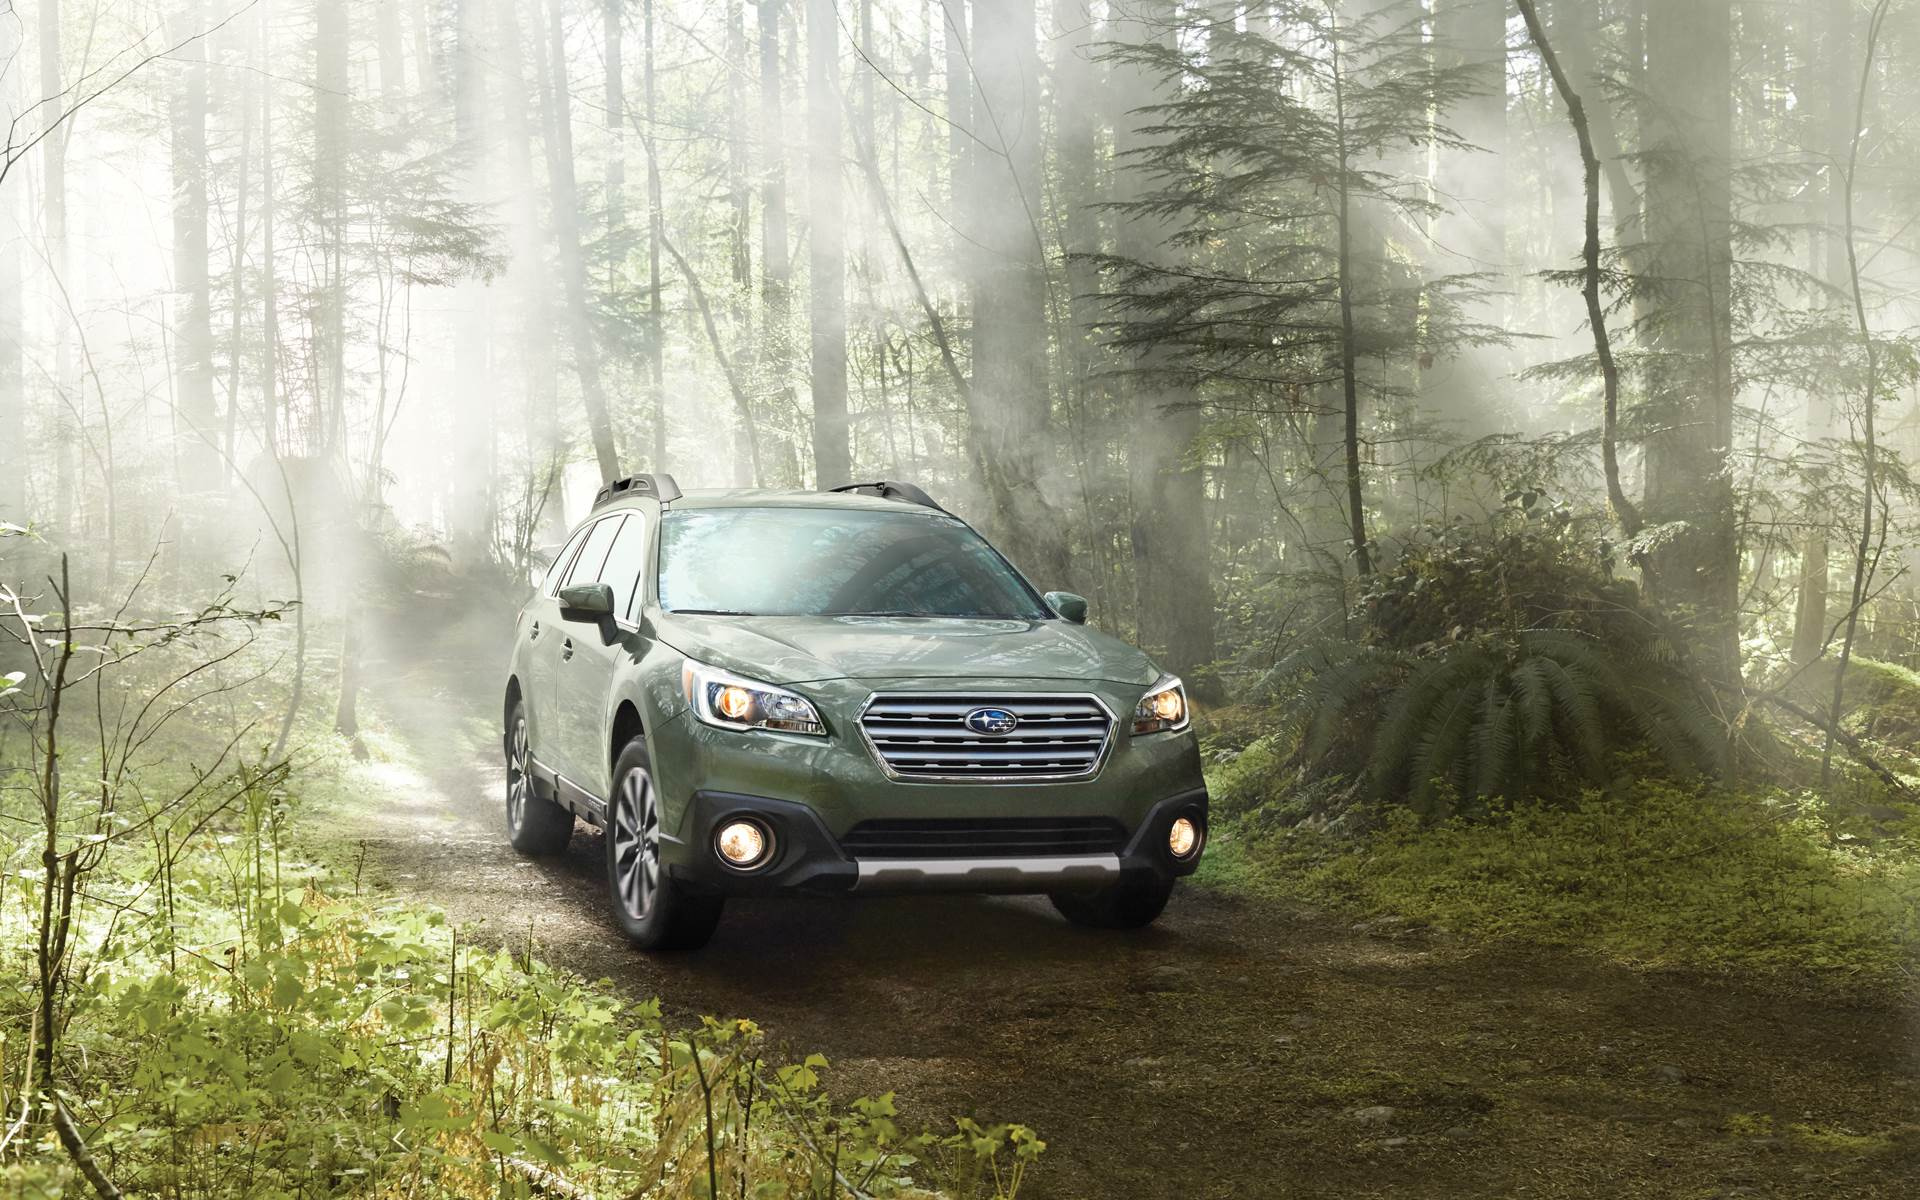 Subaru Outback © Fuji Heavy Industries, Ltd.